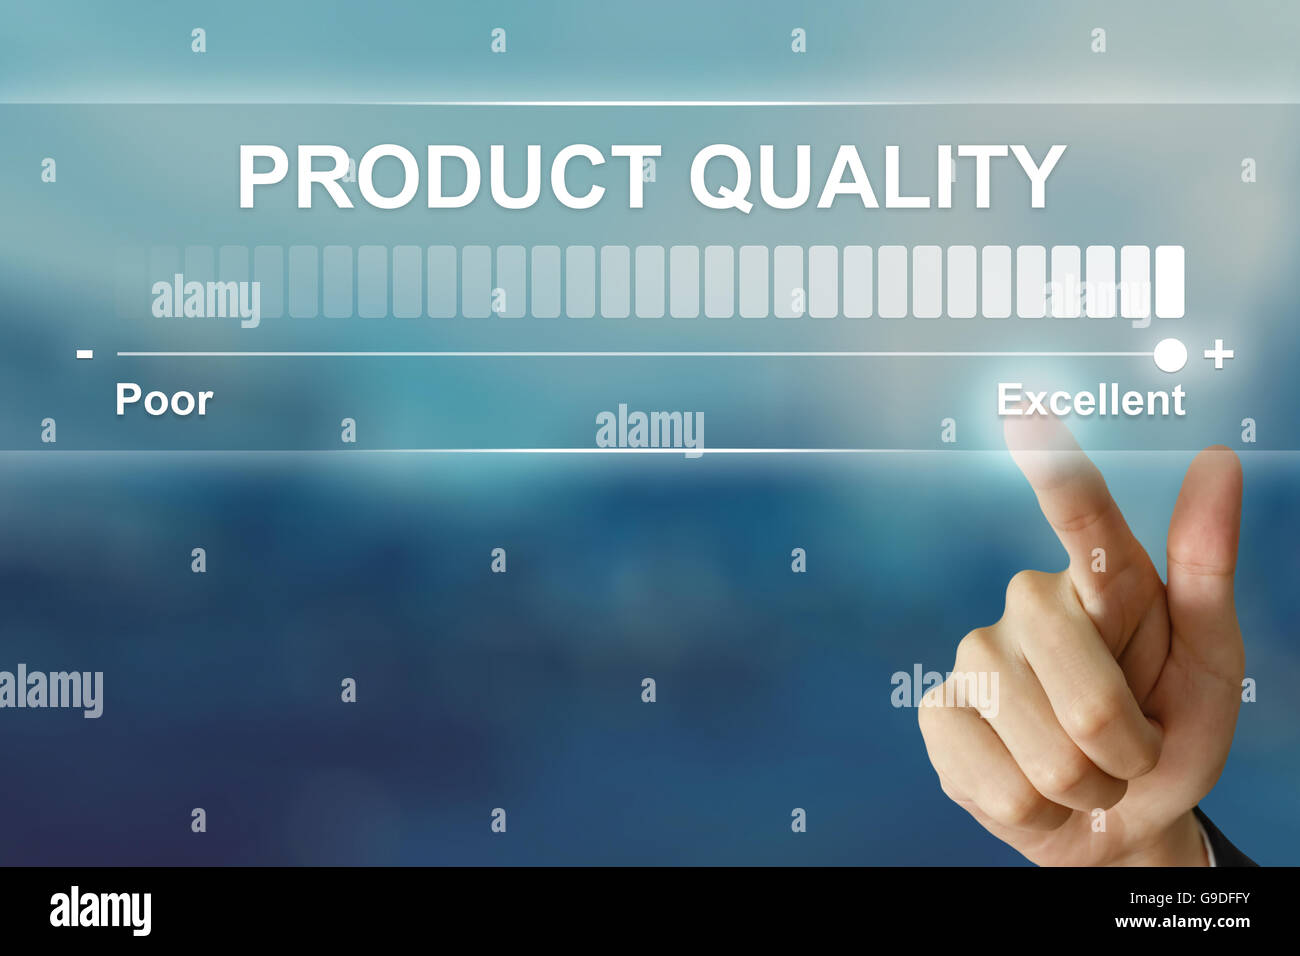 business hand pushing excellent product quality on virtual screen interface - Stock Image